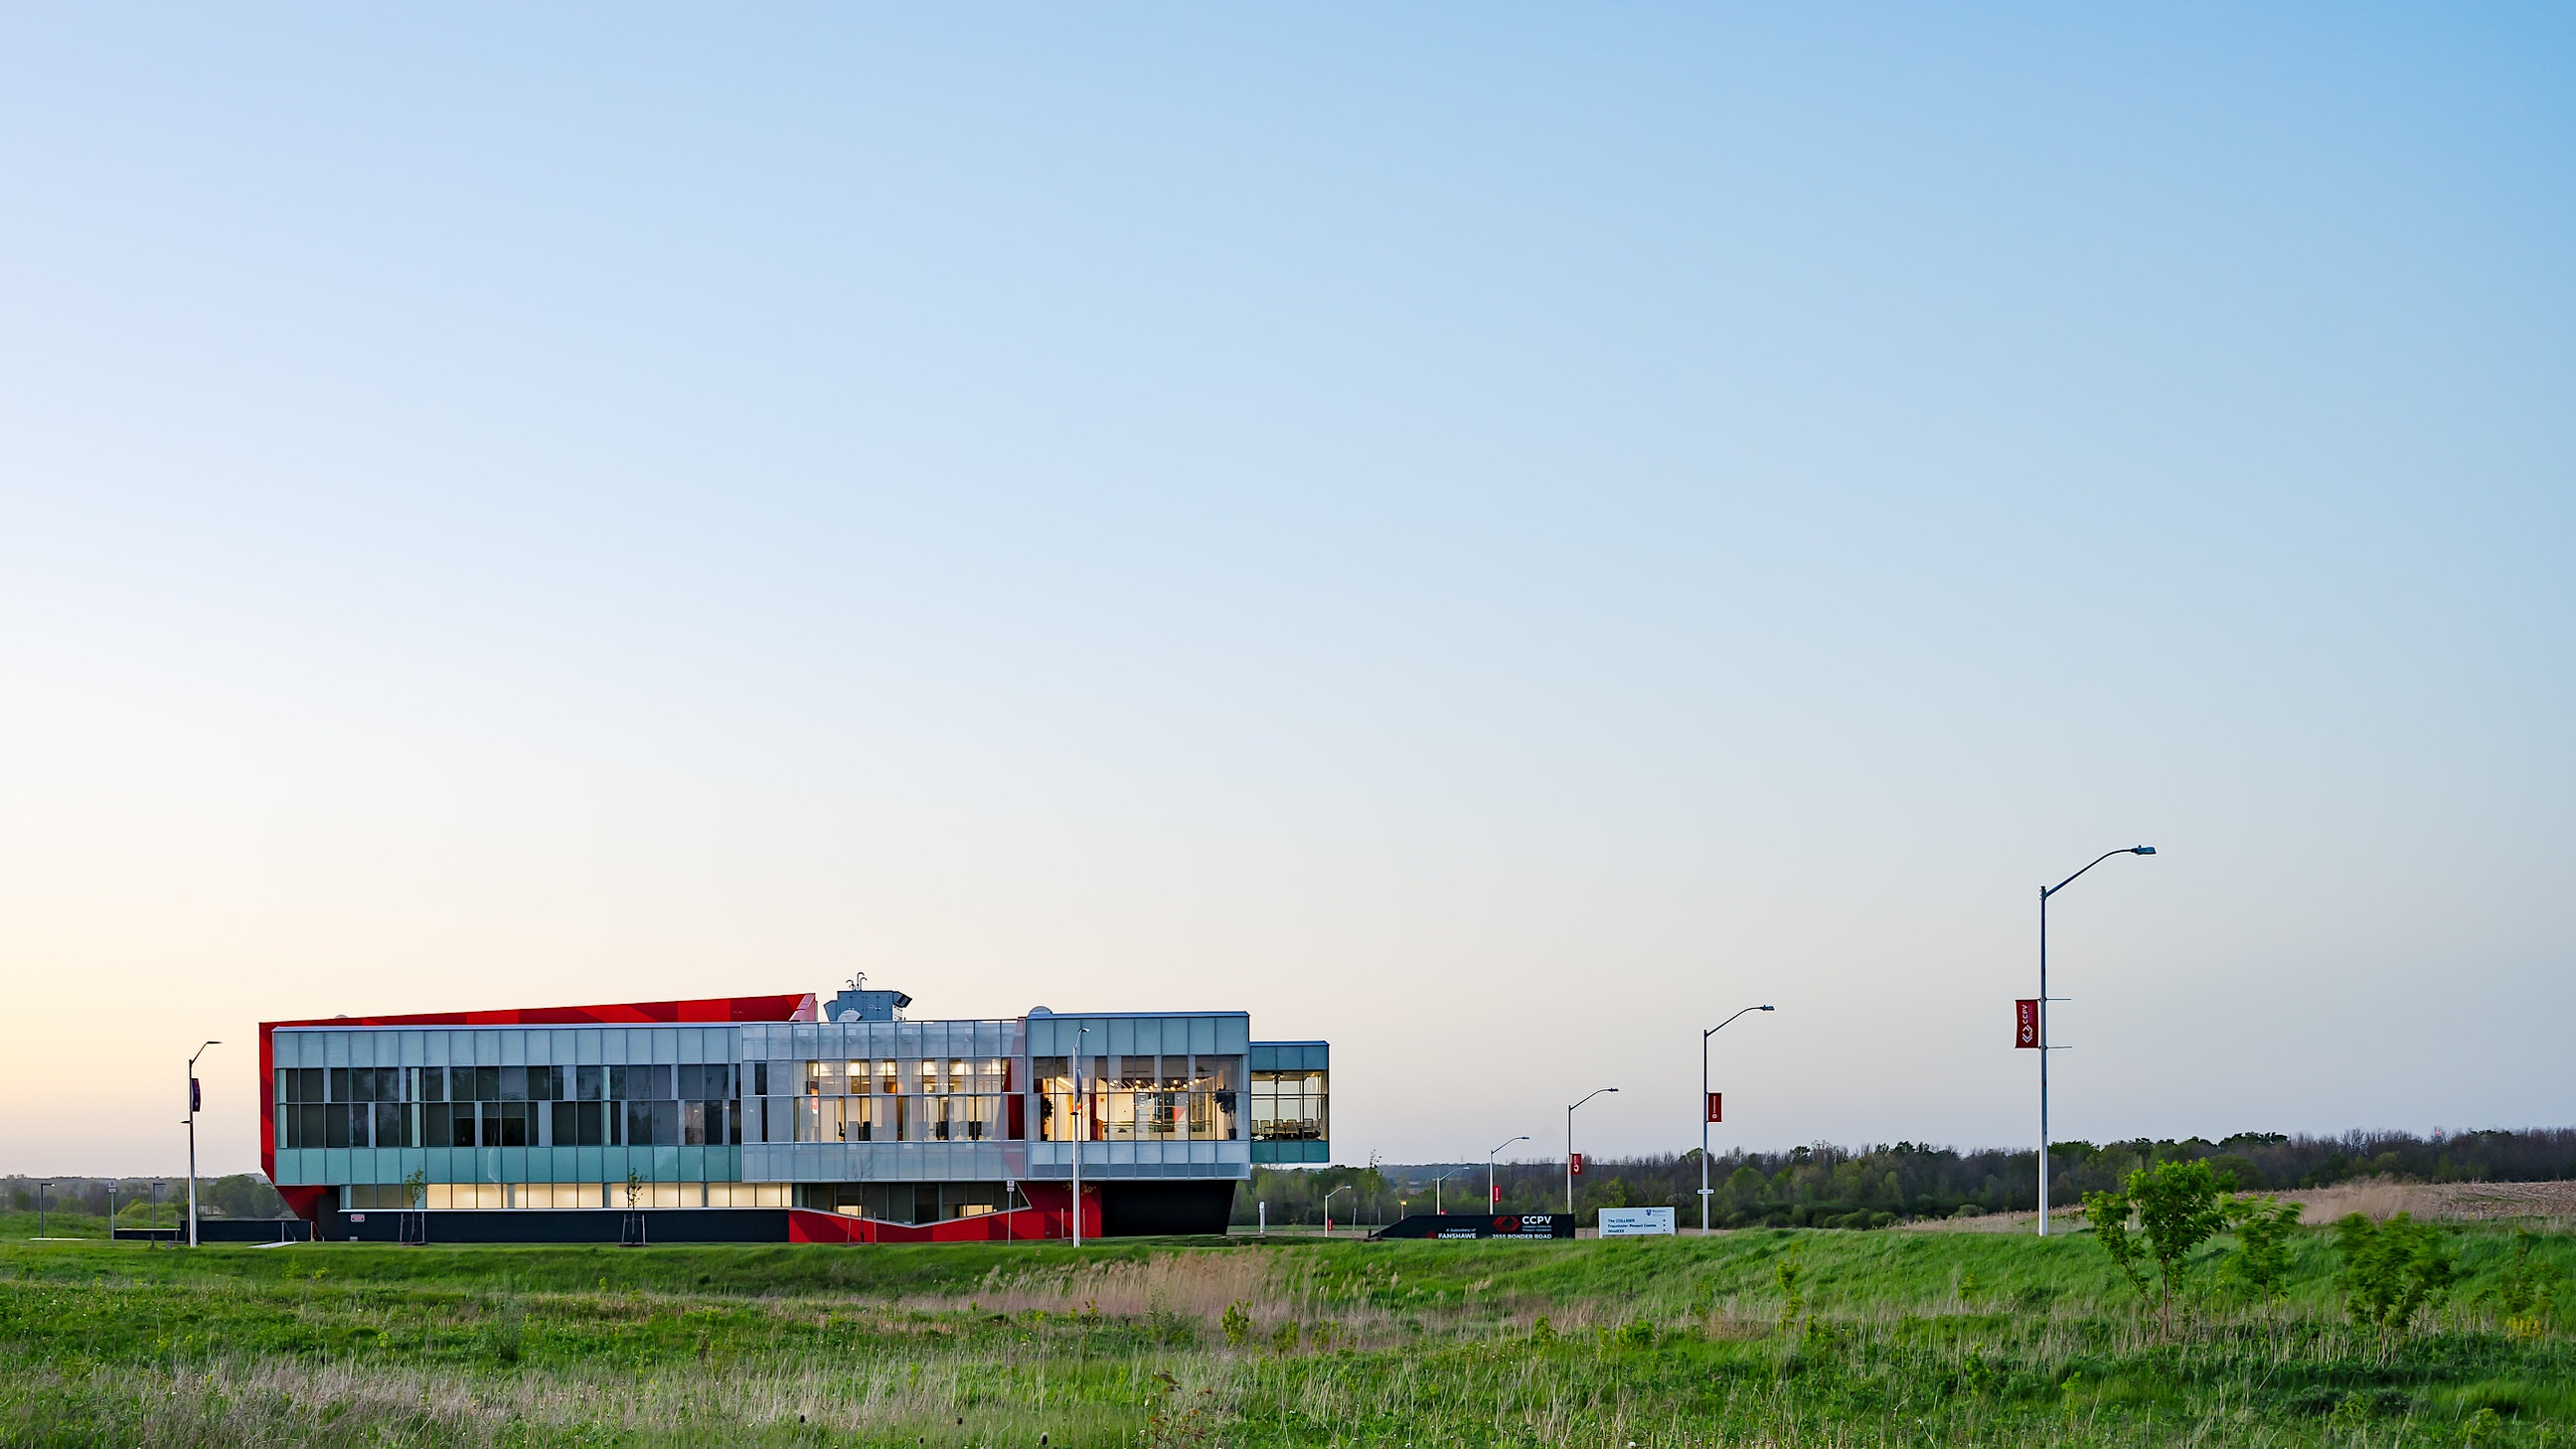 Architecture photograph by Scott Webb in London Ontario - Building: CCPV